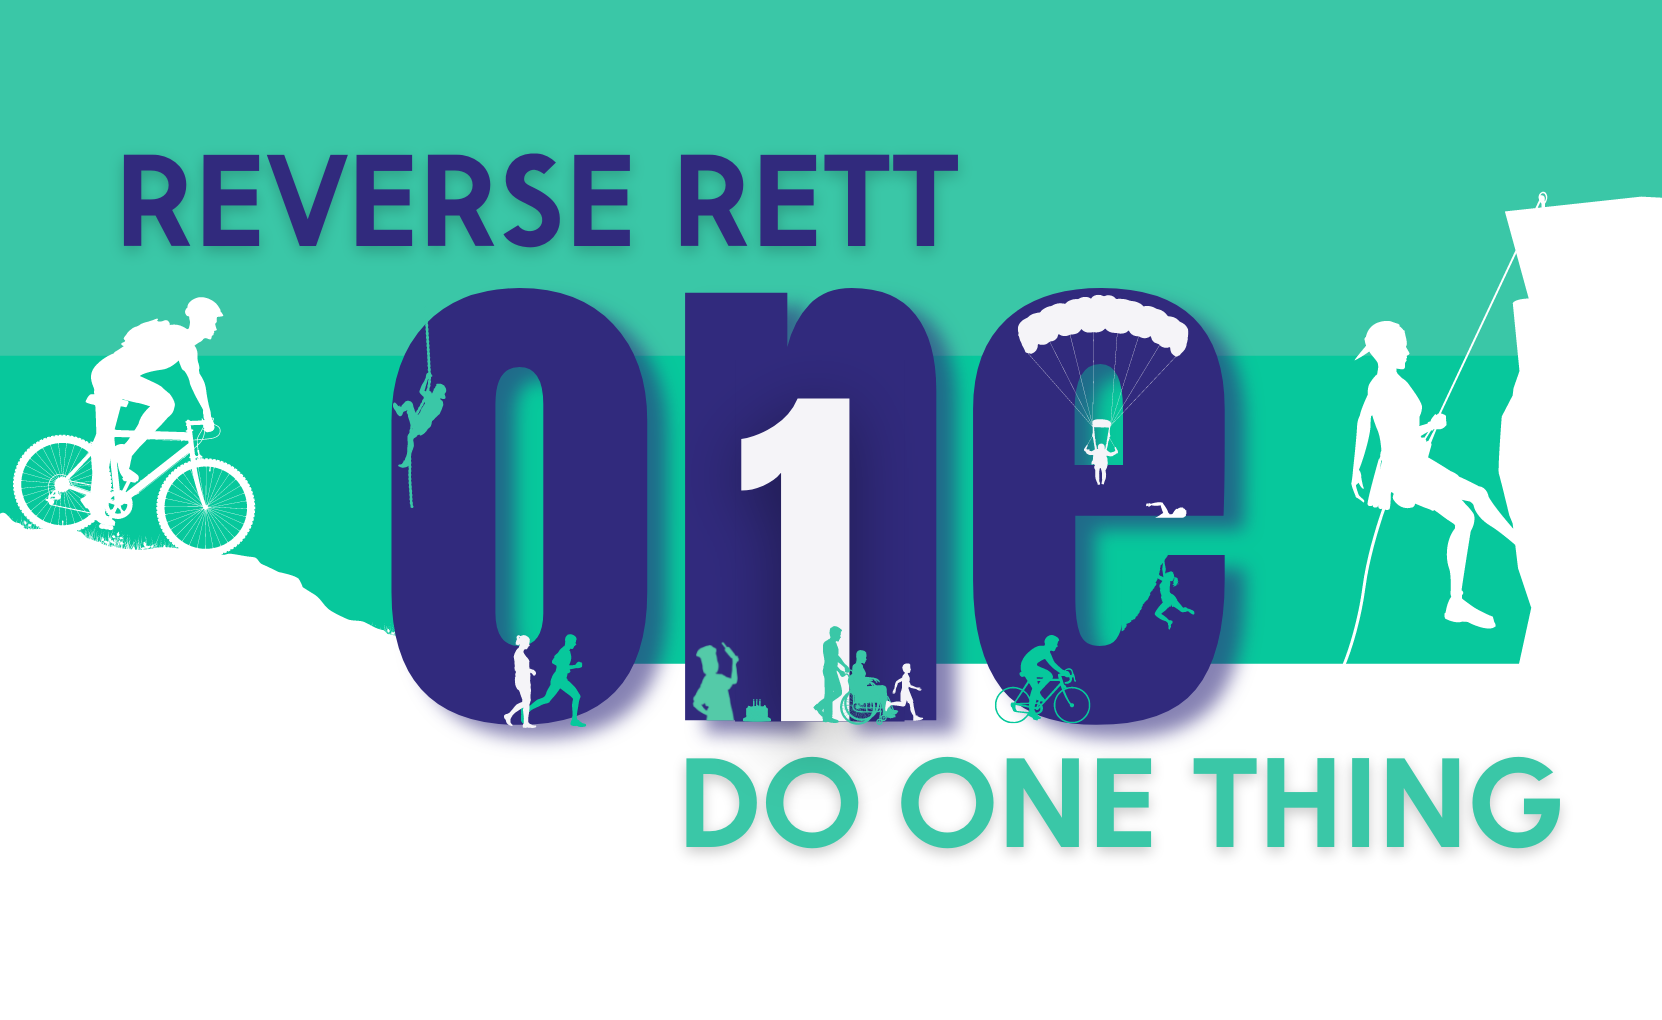 Do One Thing! 1st-31st October 2021